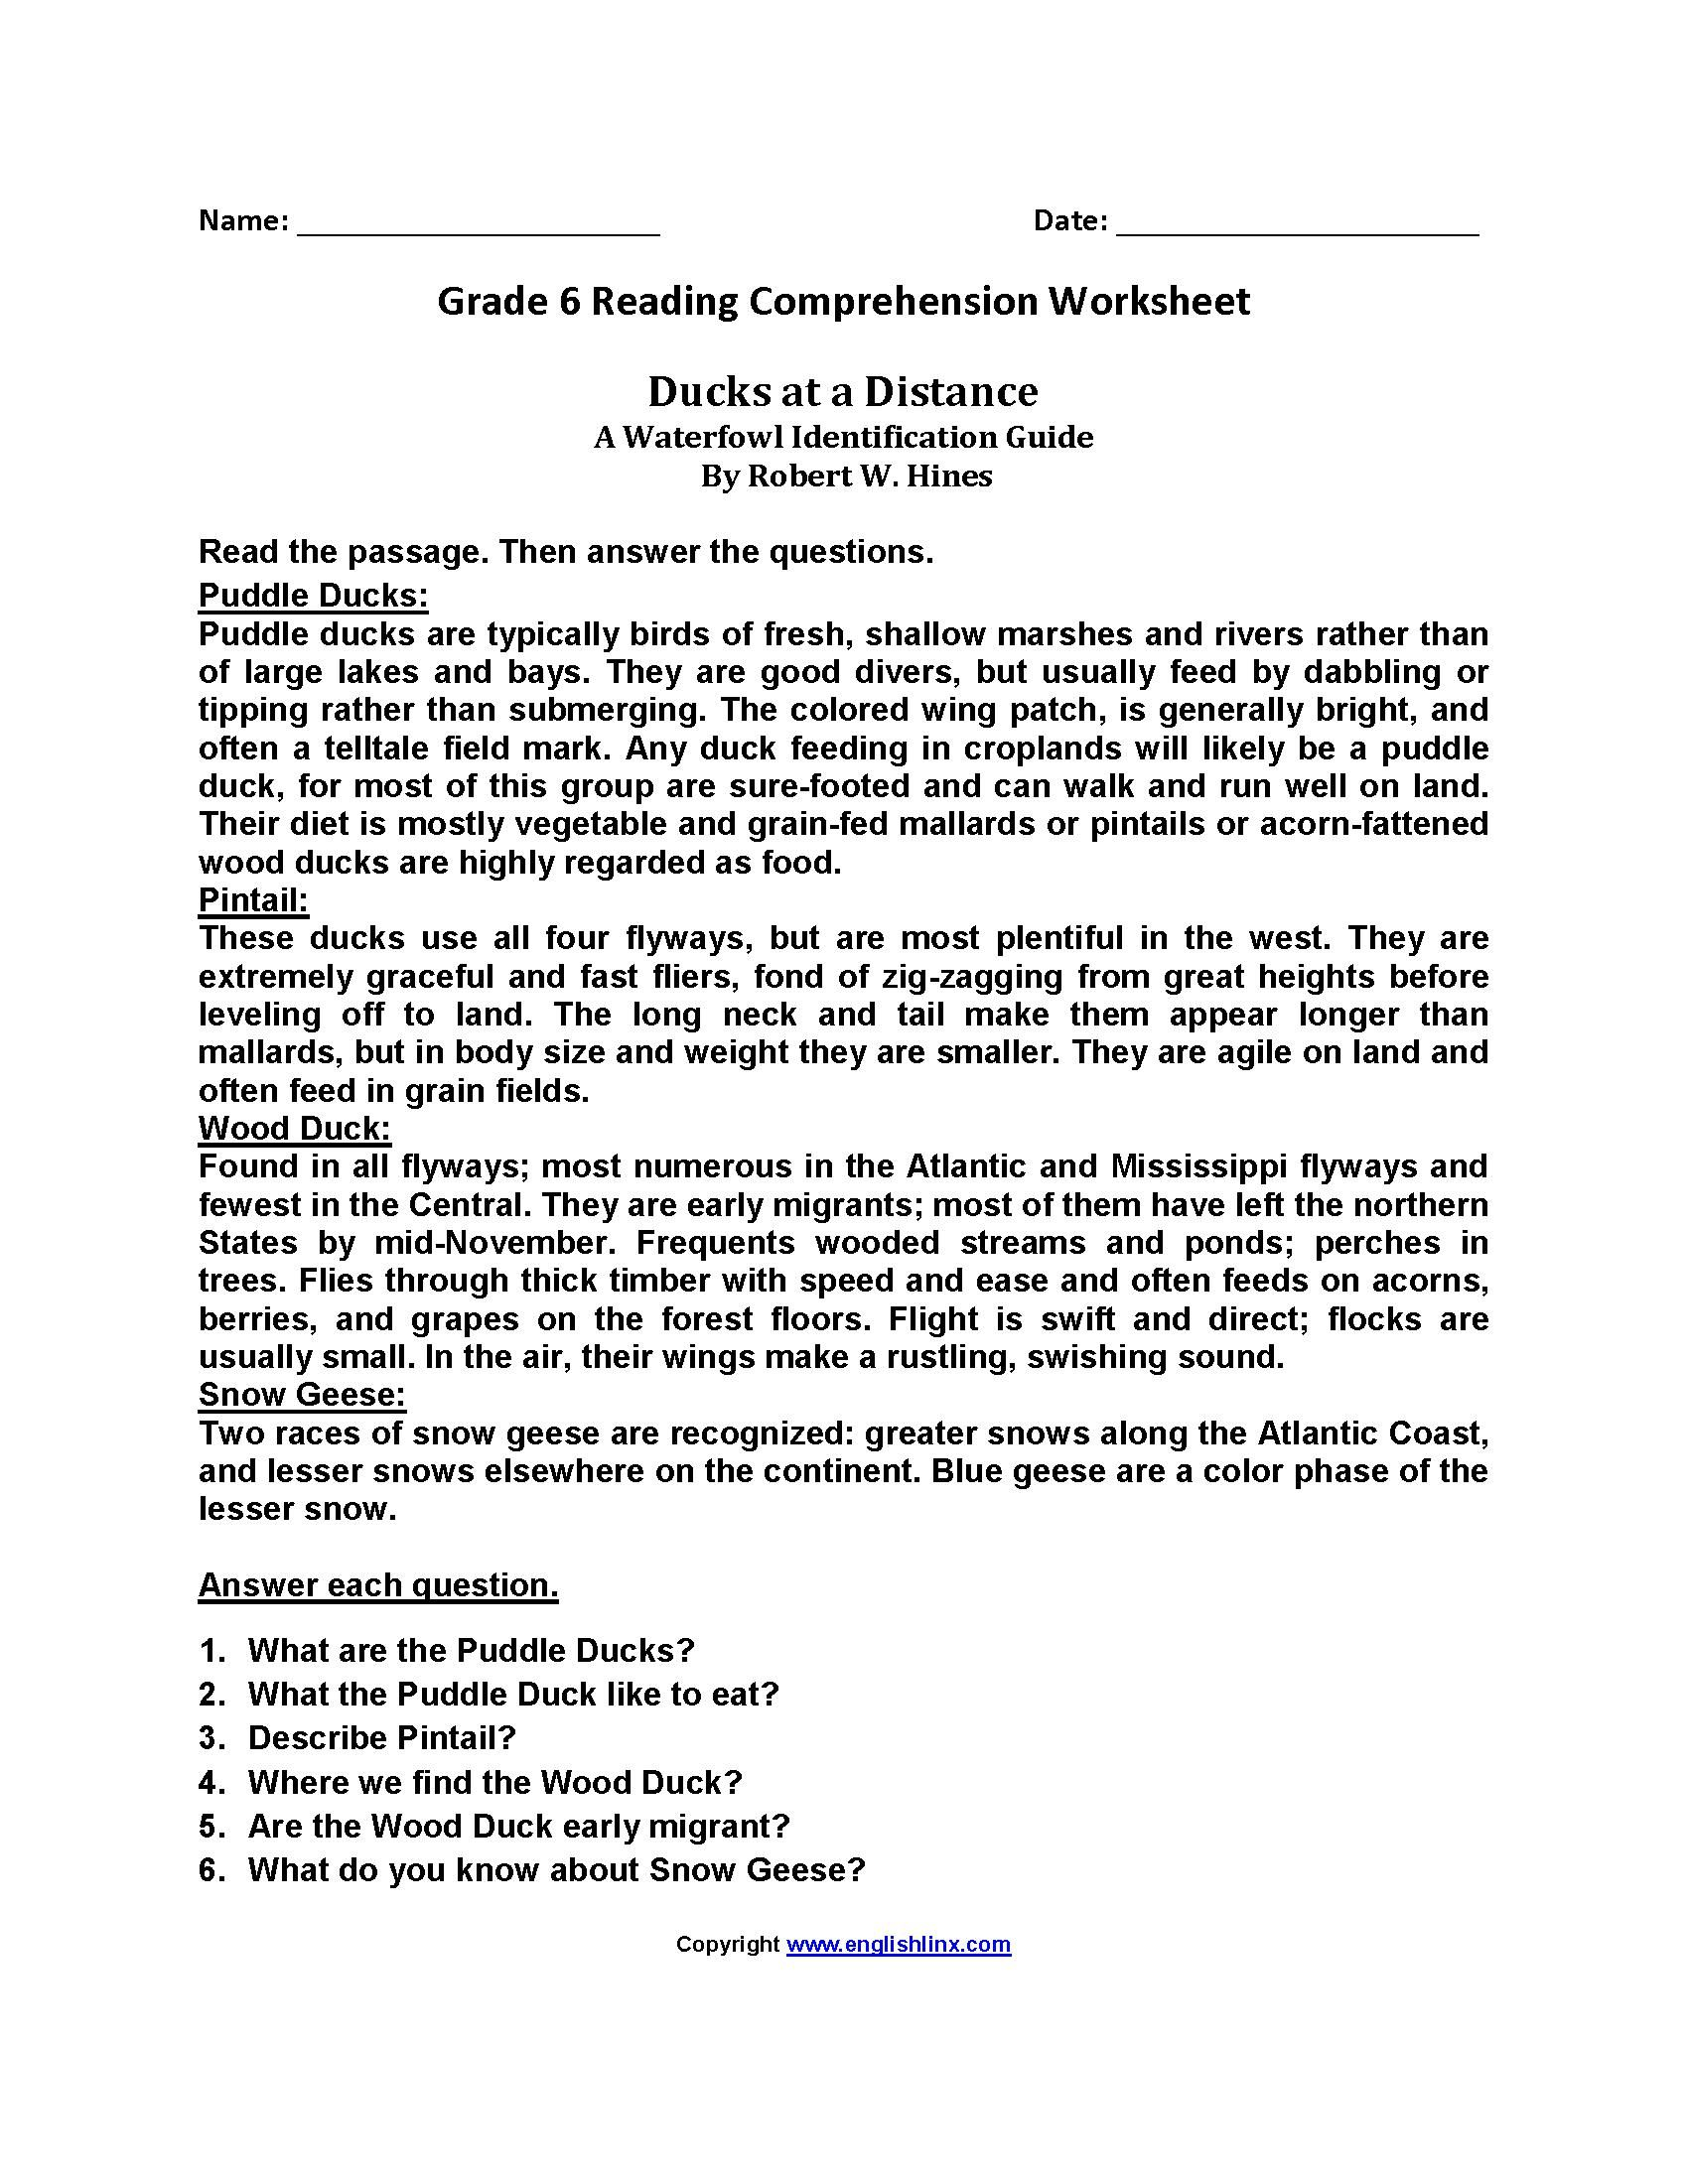 Free Printable Reading Comprehension Worksheets Year 6 Uk